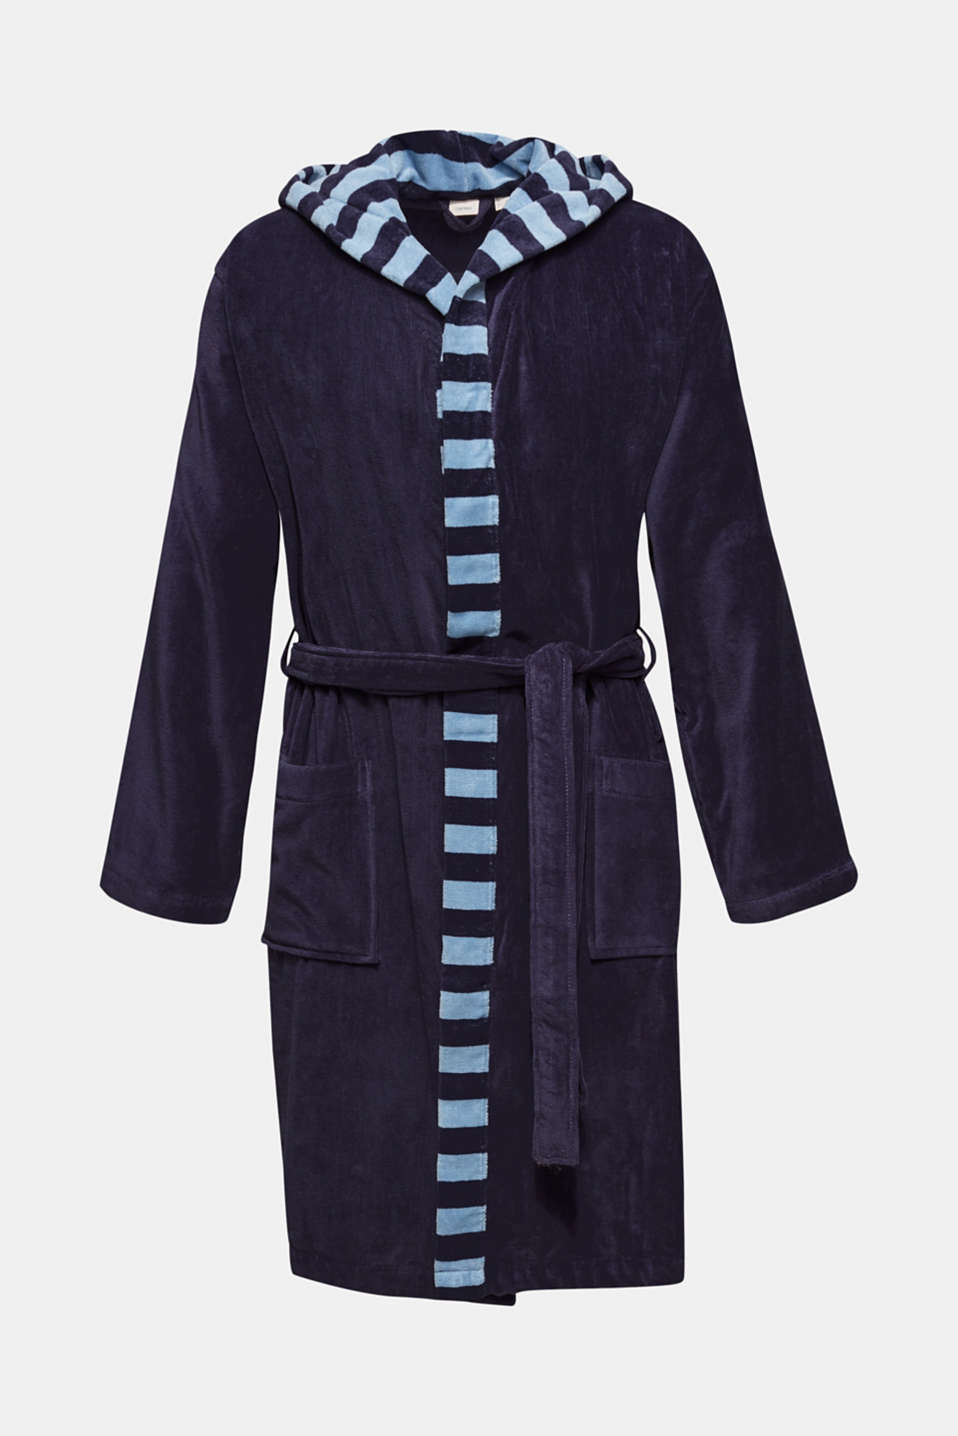 Mens striped bathrobe, 100% cotton, NAVY BLUE, detail image number 0